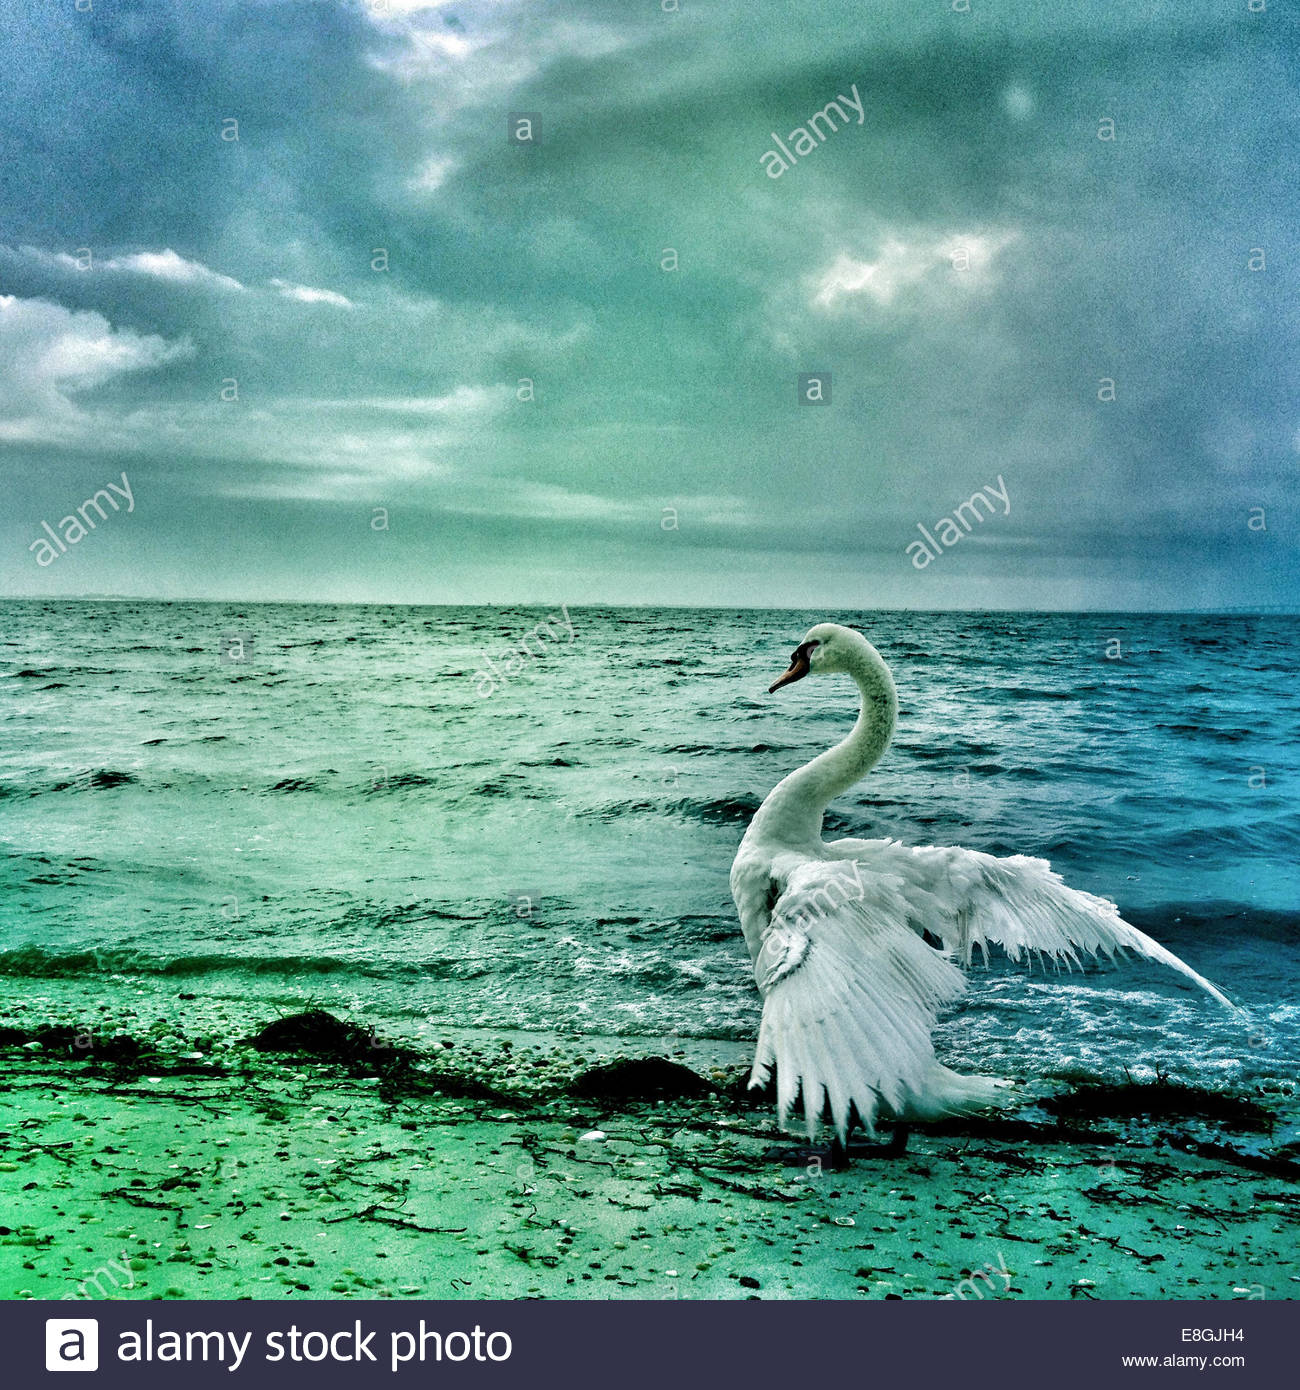 Swan in the sea - Stock Image